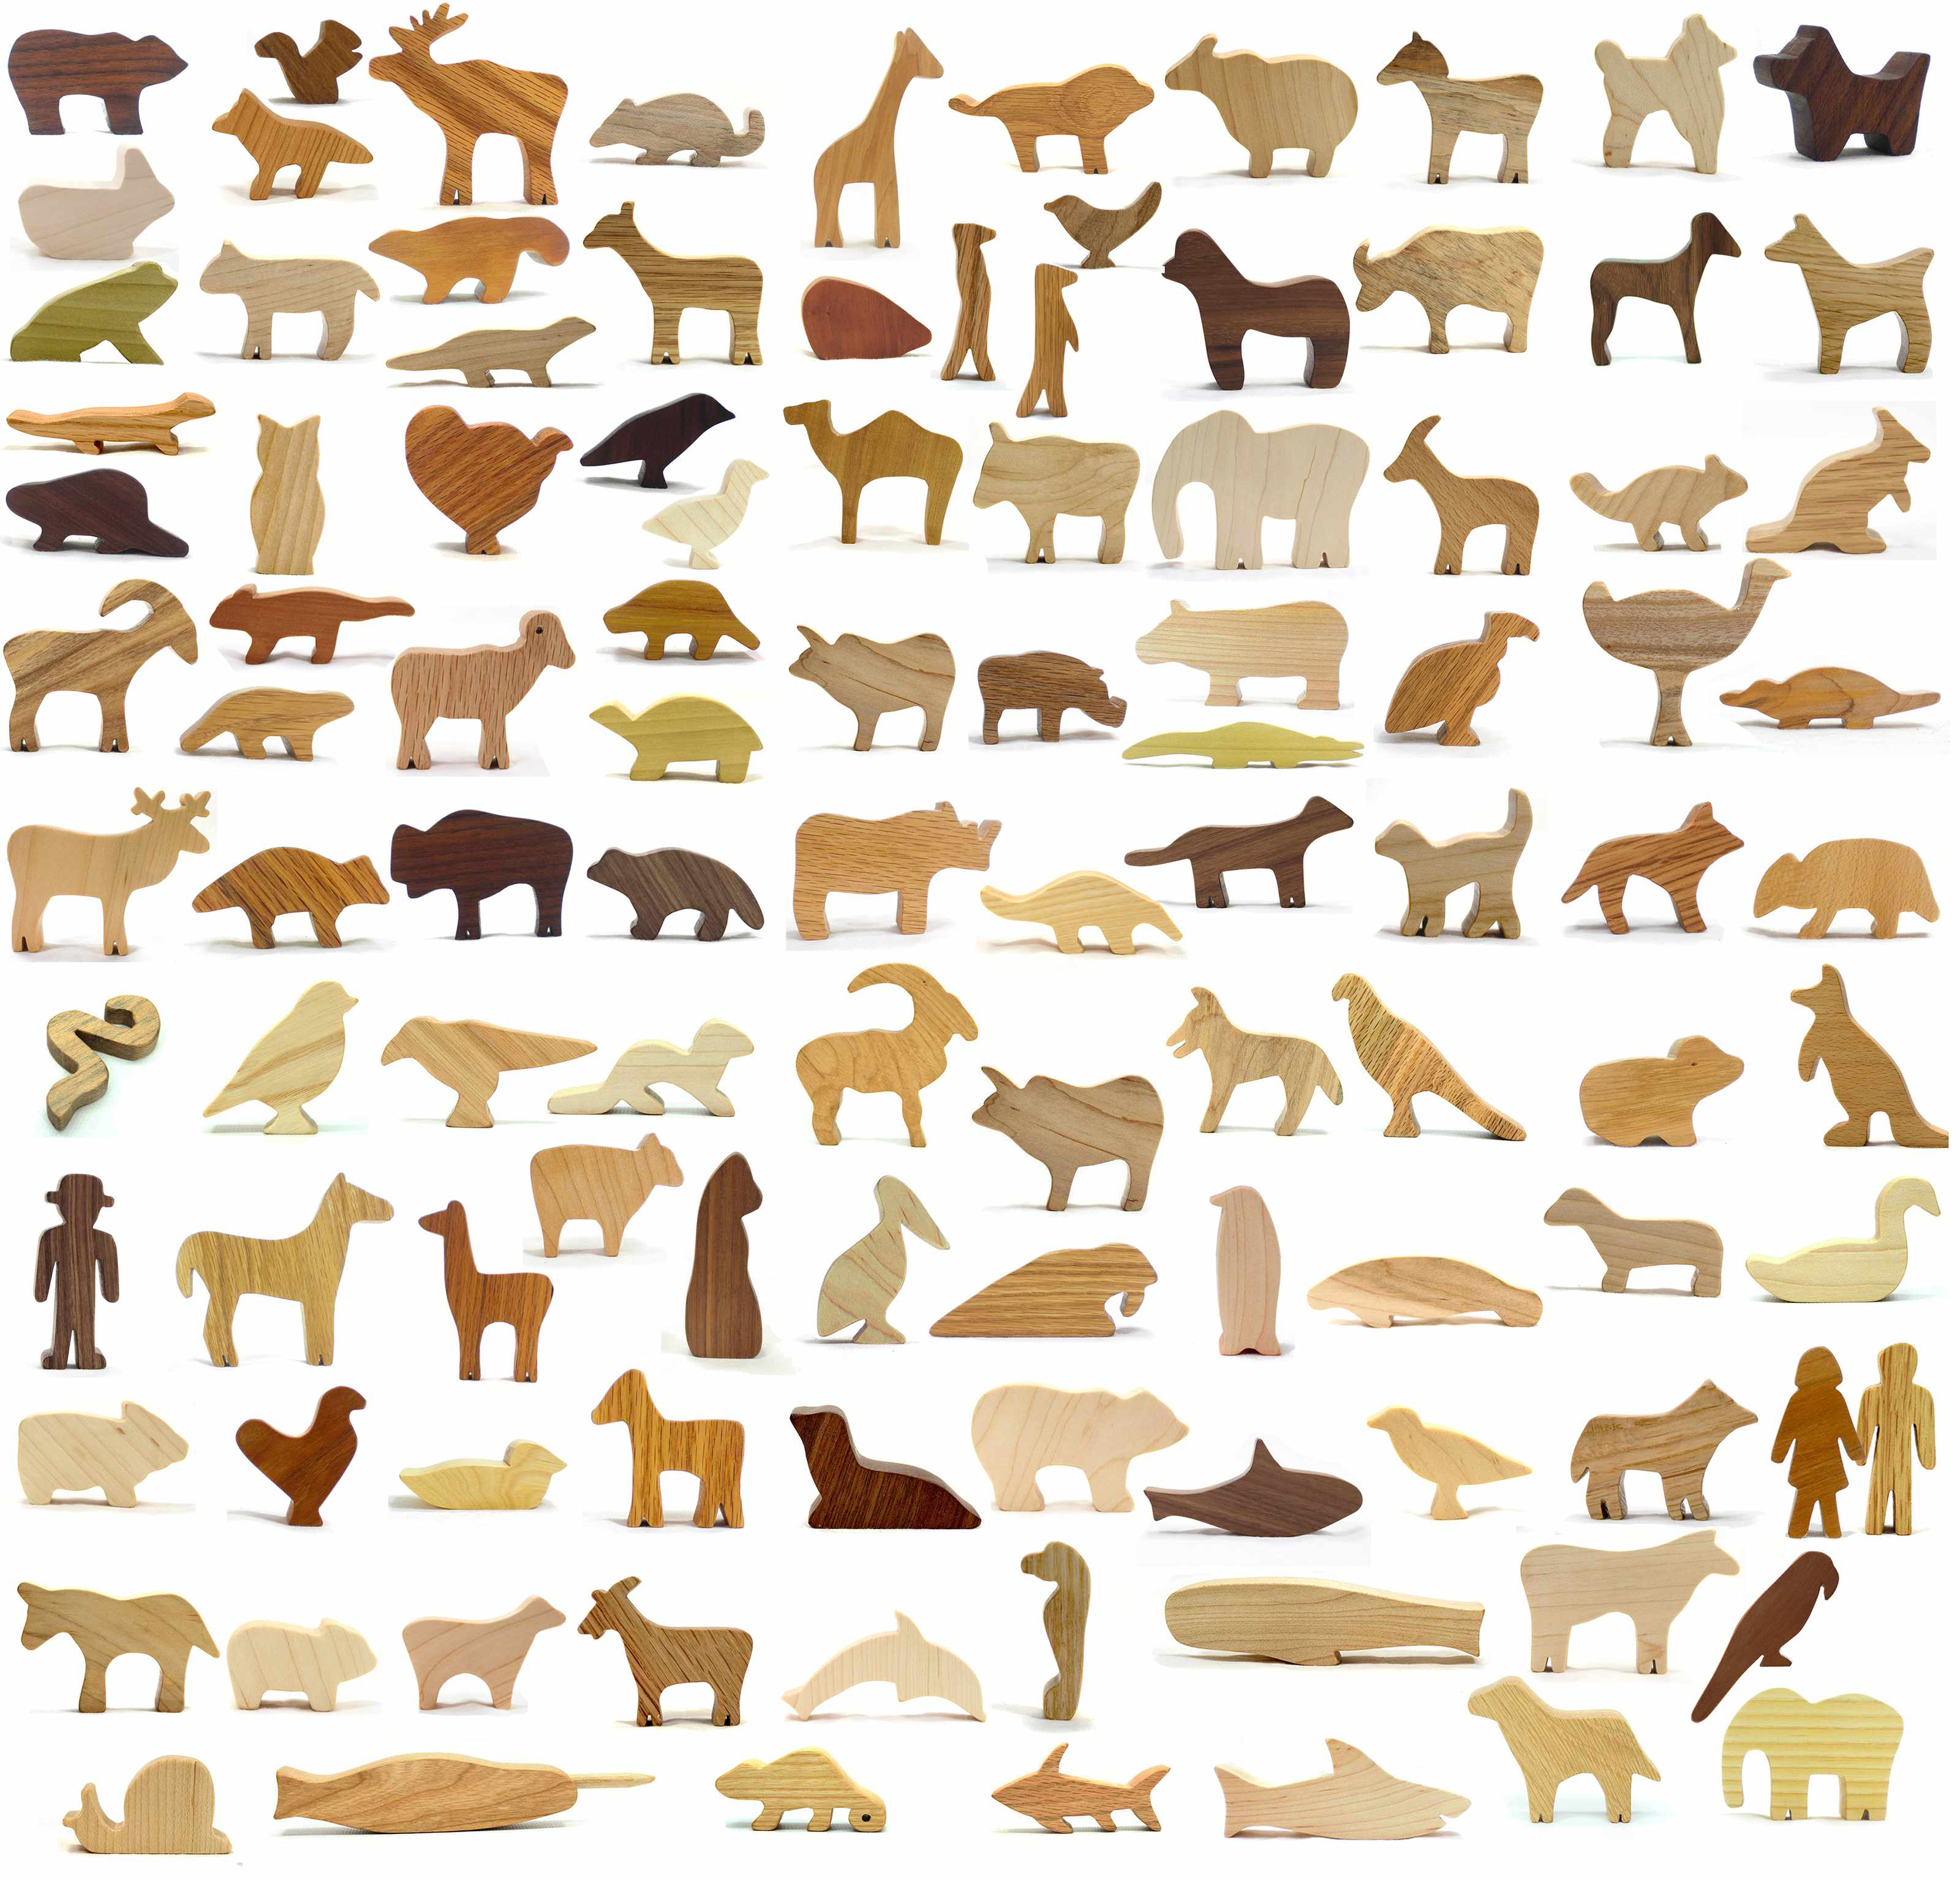 Wood Animal Toy Super Set: 108 Pieces